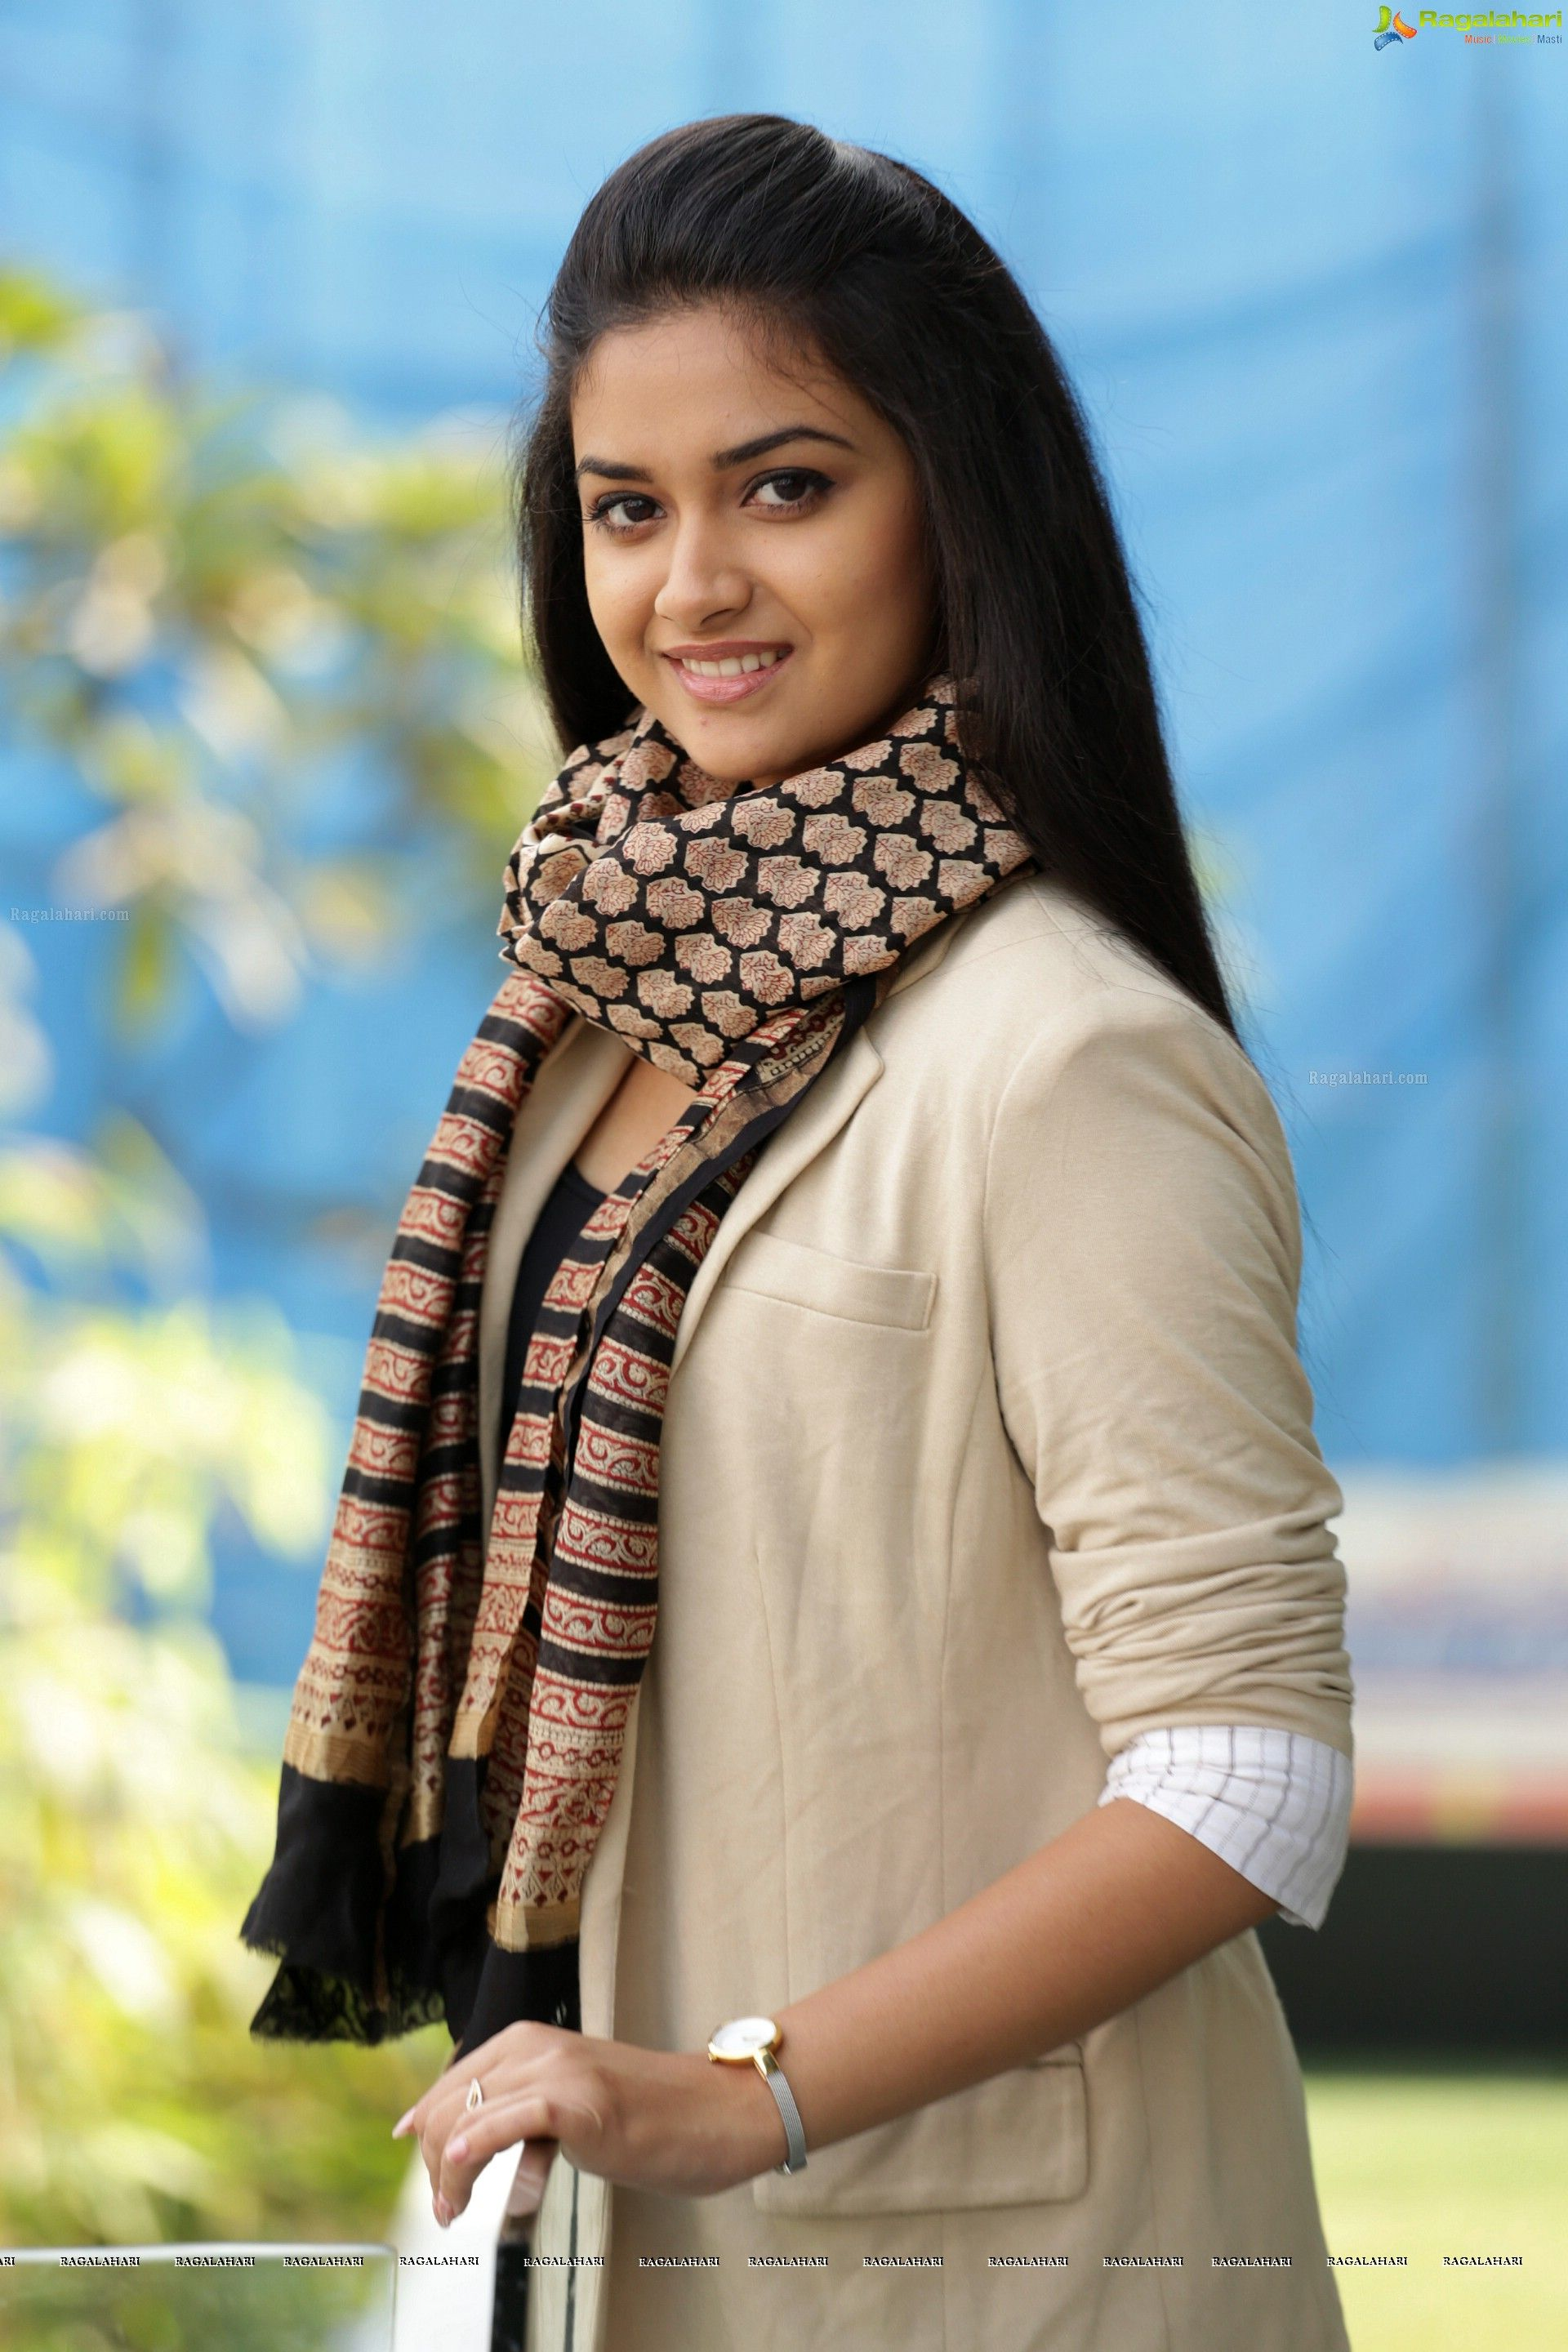 Free Porn Video Easy Download throughout keerthy suresh latest gallery hd wallpapers free hd images